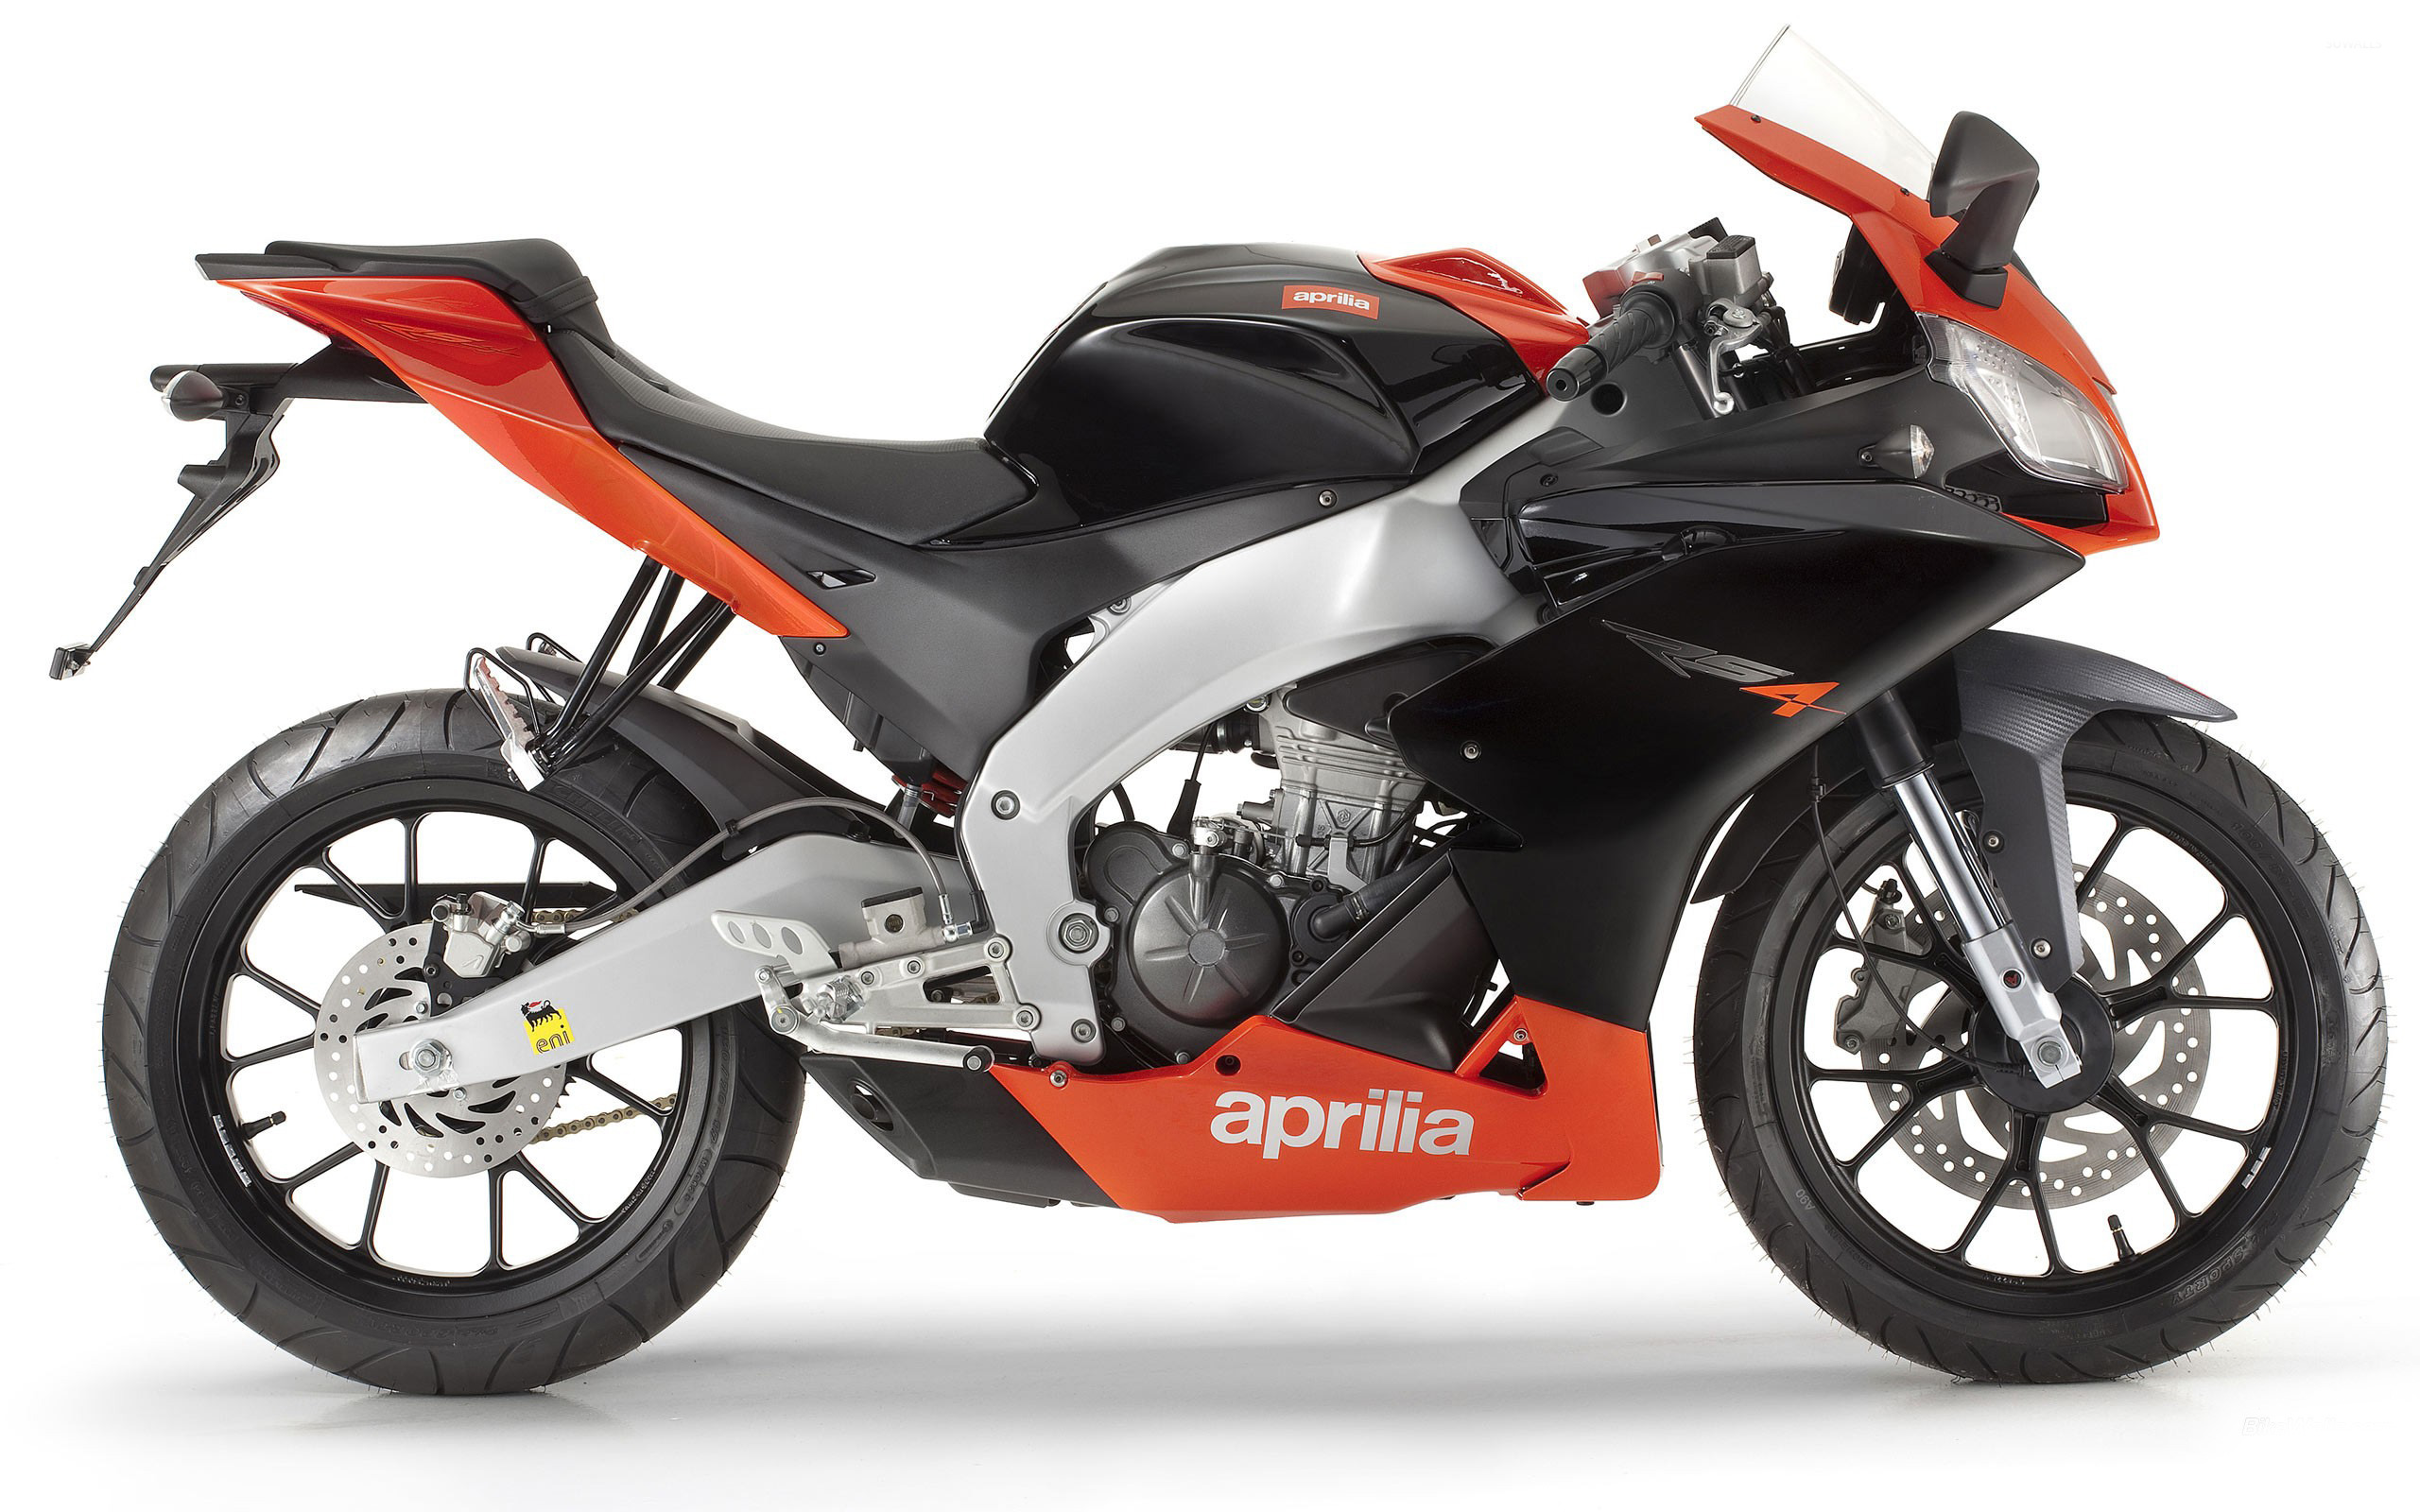 aprilia rs4 125 4 wallpaper motorcycle wallpapers 11052. Black Bedroom Furniture Sets. Home Design Ideas